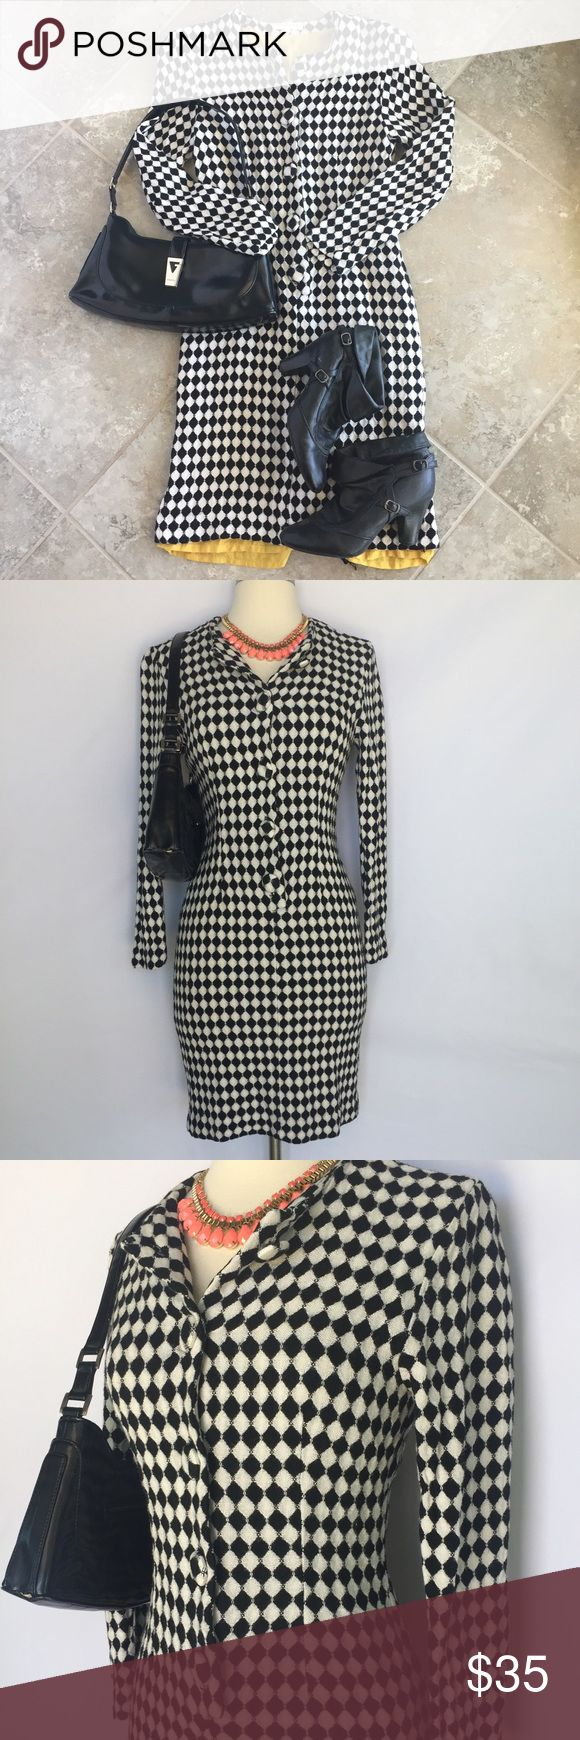 Selling this Vintage Ann Taylor black and white checkered dress on Poshmark! My username is: prairiechic24. #shopmycloset #poshmark #fashion #shopping #style #forsale #Ann Taylor #Dresses & Skirts